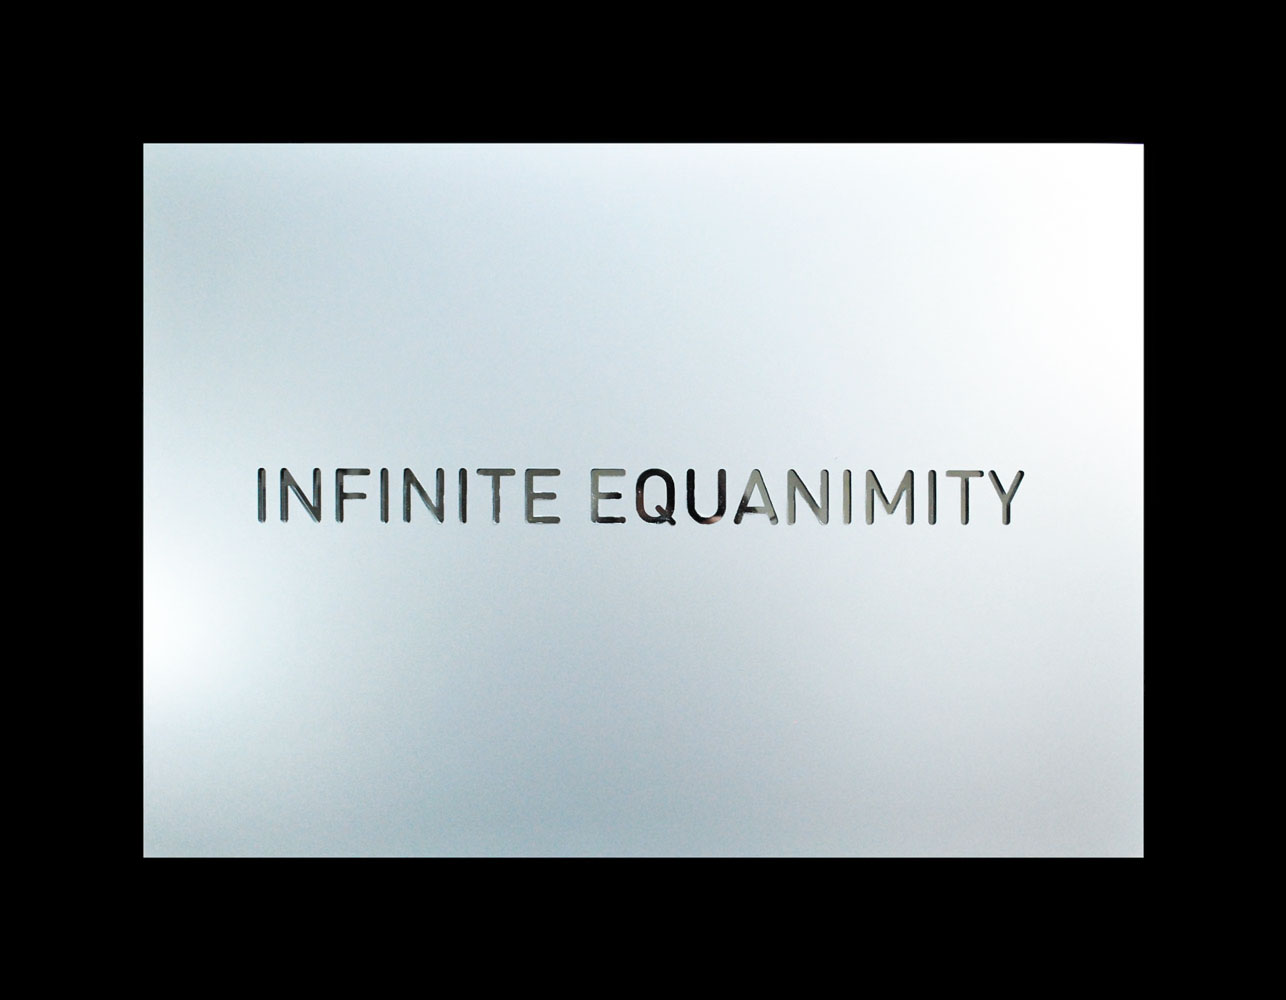 infinite-equanimity